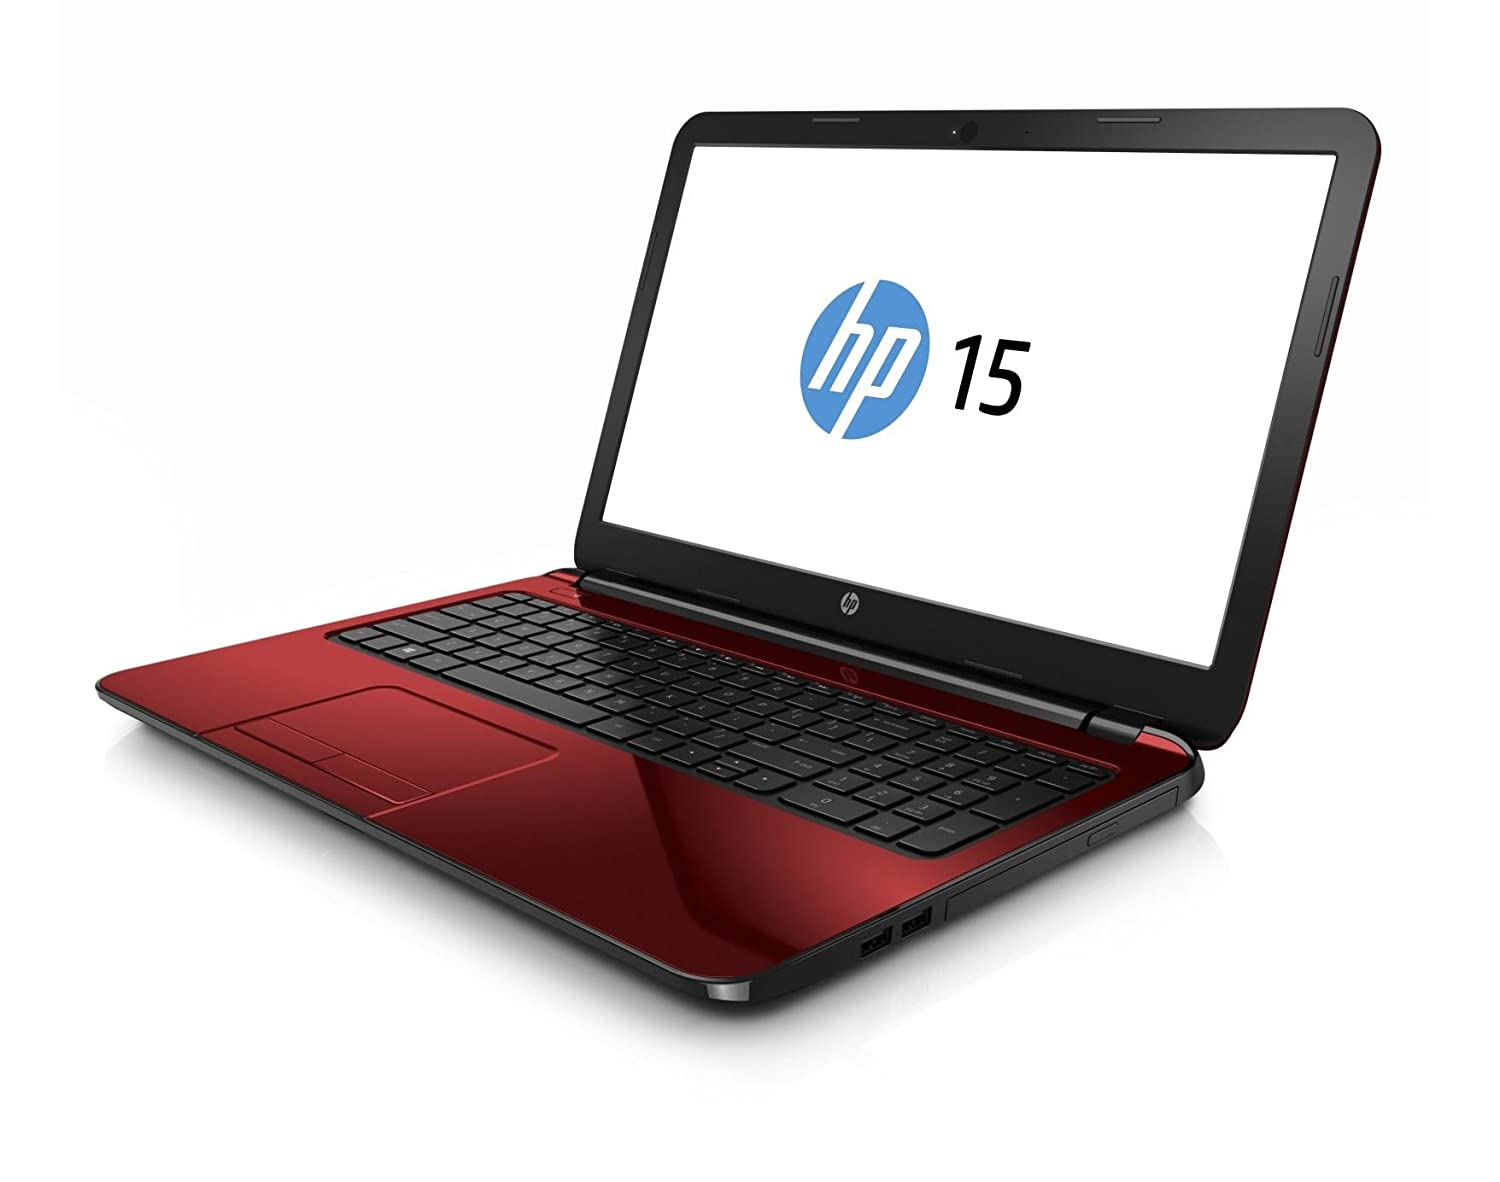 Amazon.com: HP 15-R132WM 15.6